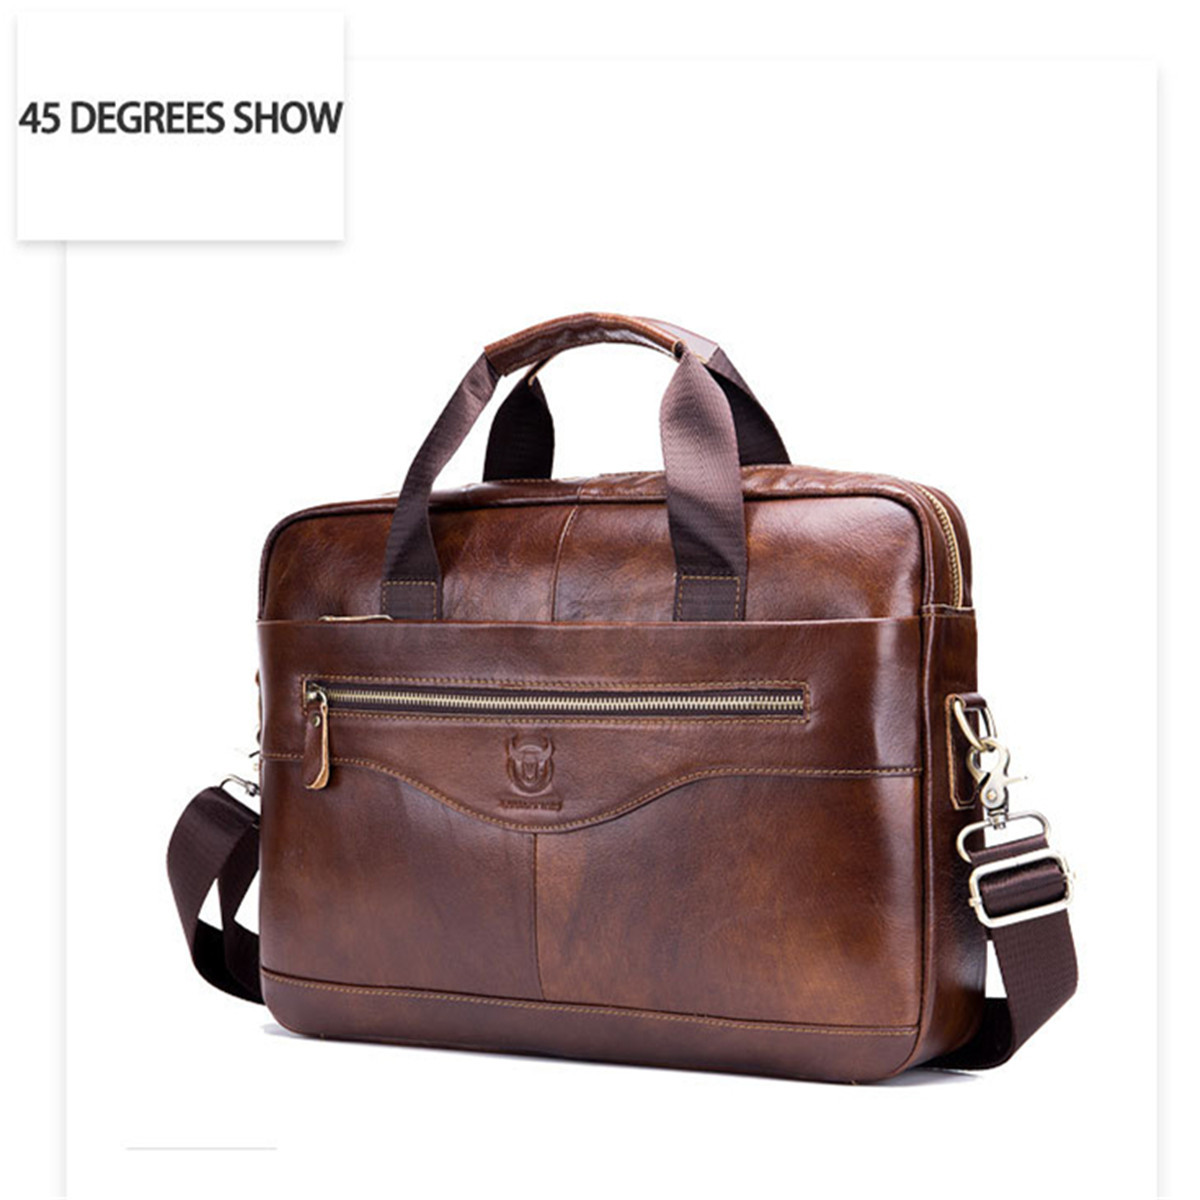 Men Genuine Leather Shoulder Business Bag Briefcase Messenger Handbag Tote 2019